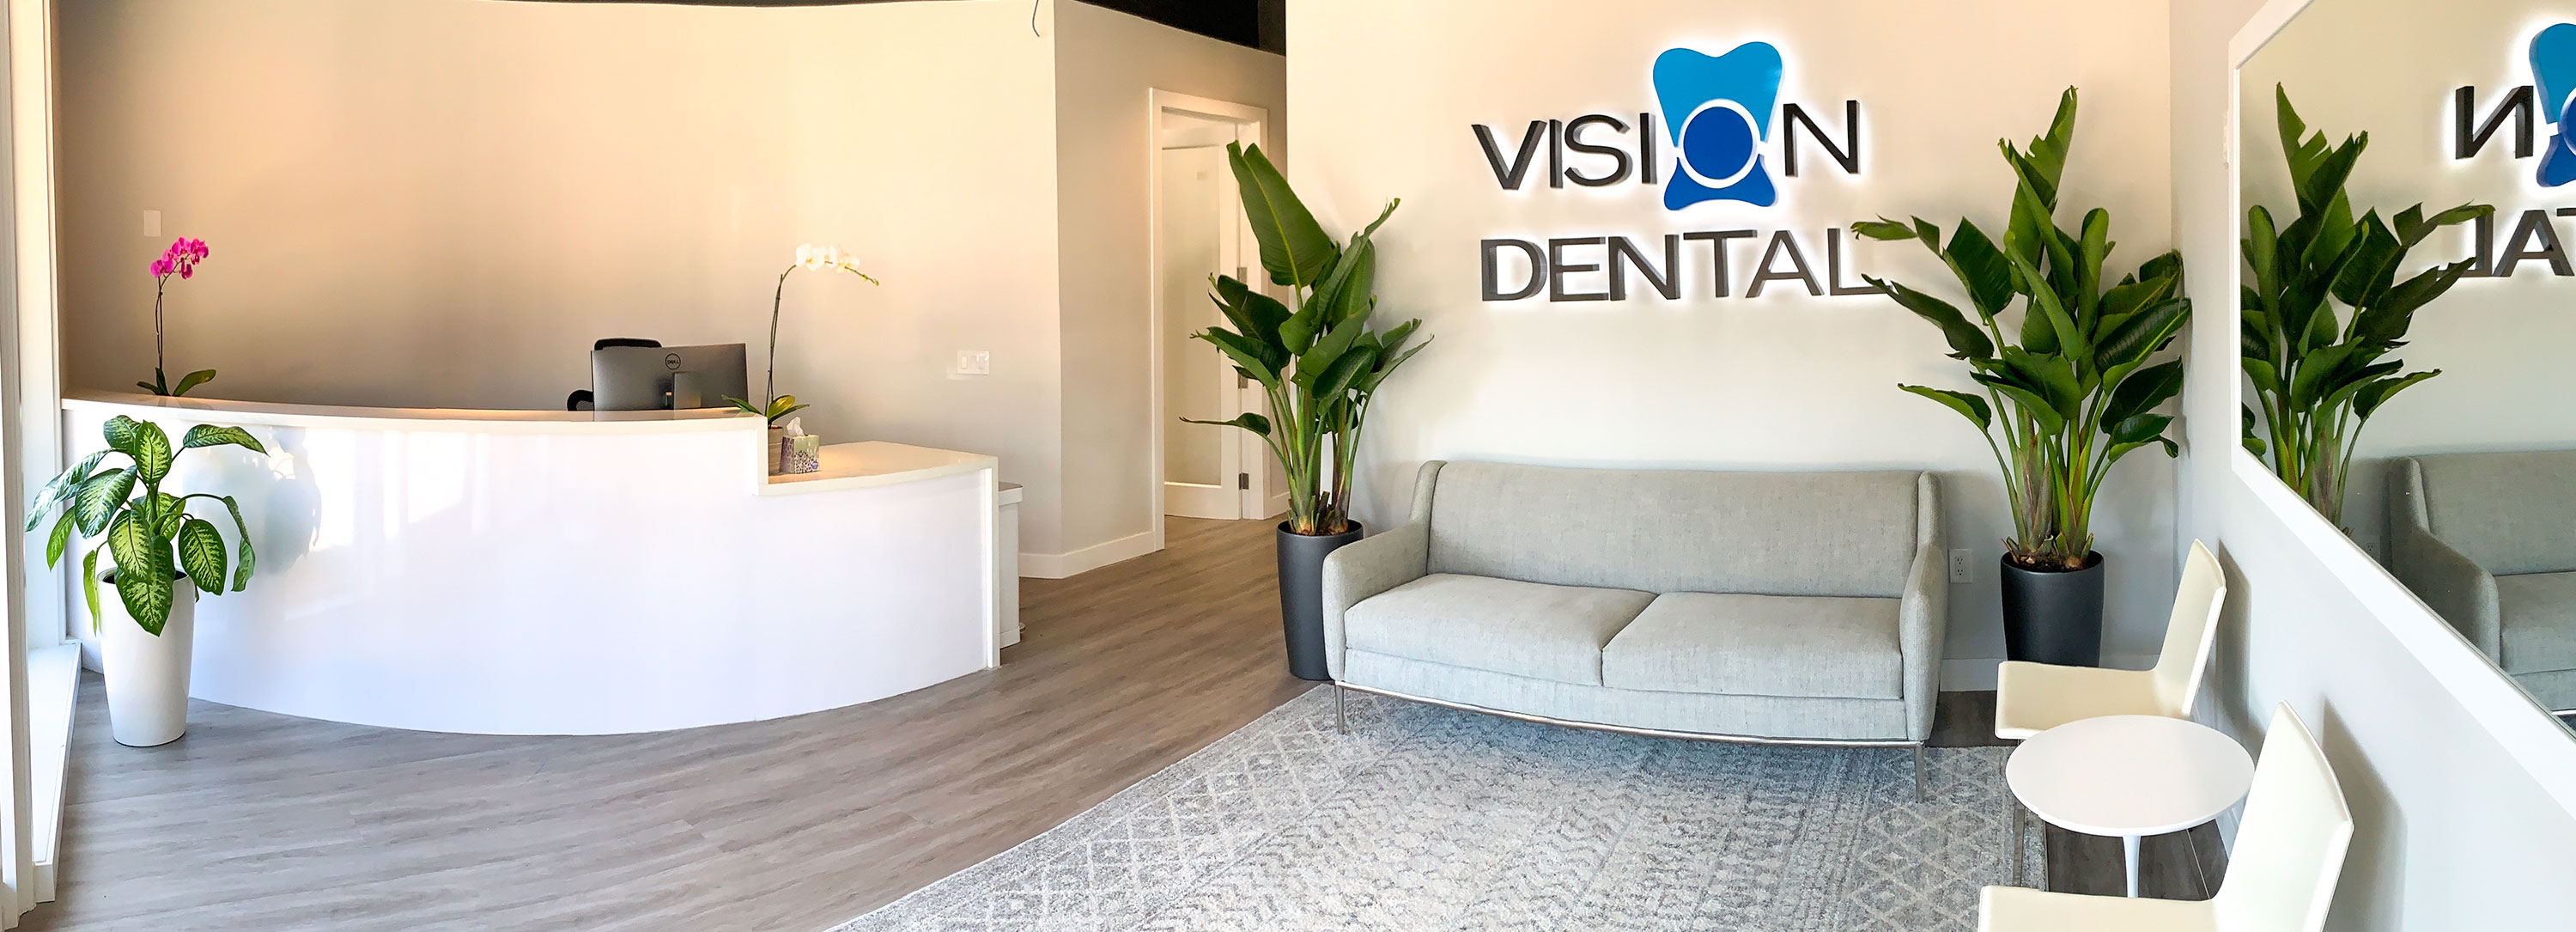 Vision Dental | View of dental exam room